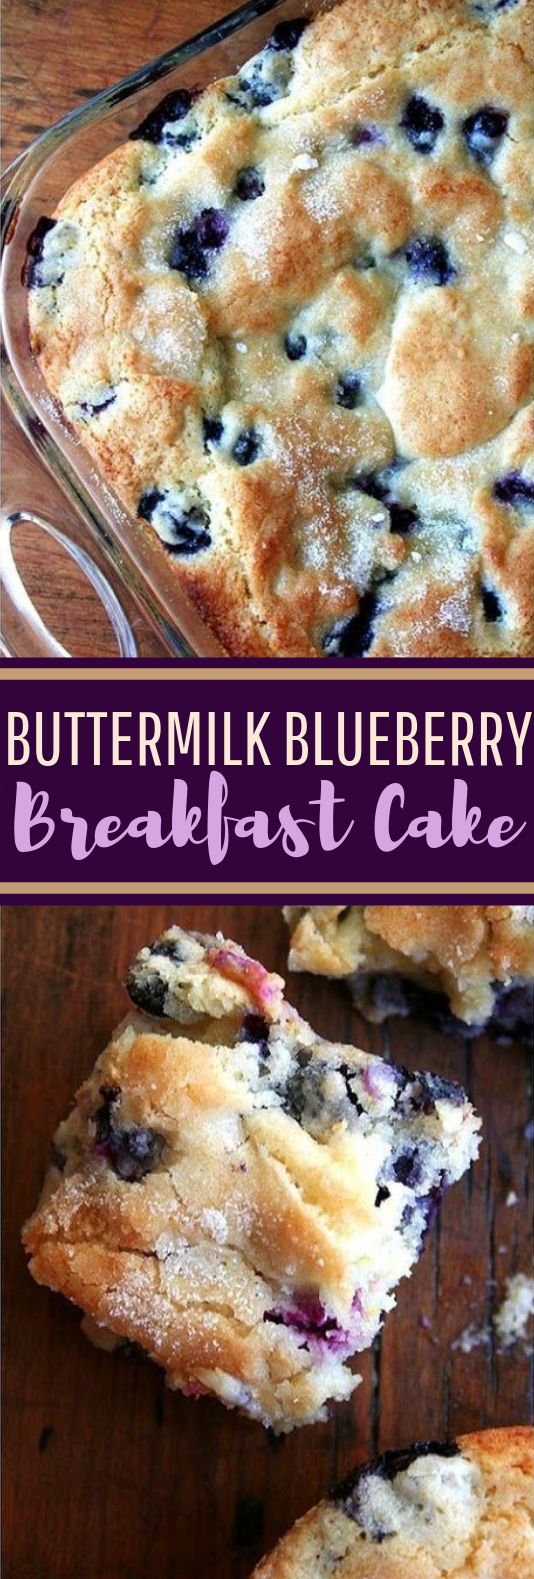 Buttermilk Blueberry Breakfast Cake #cake #baking